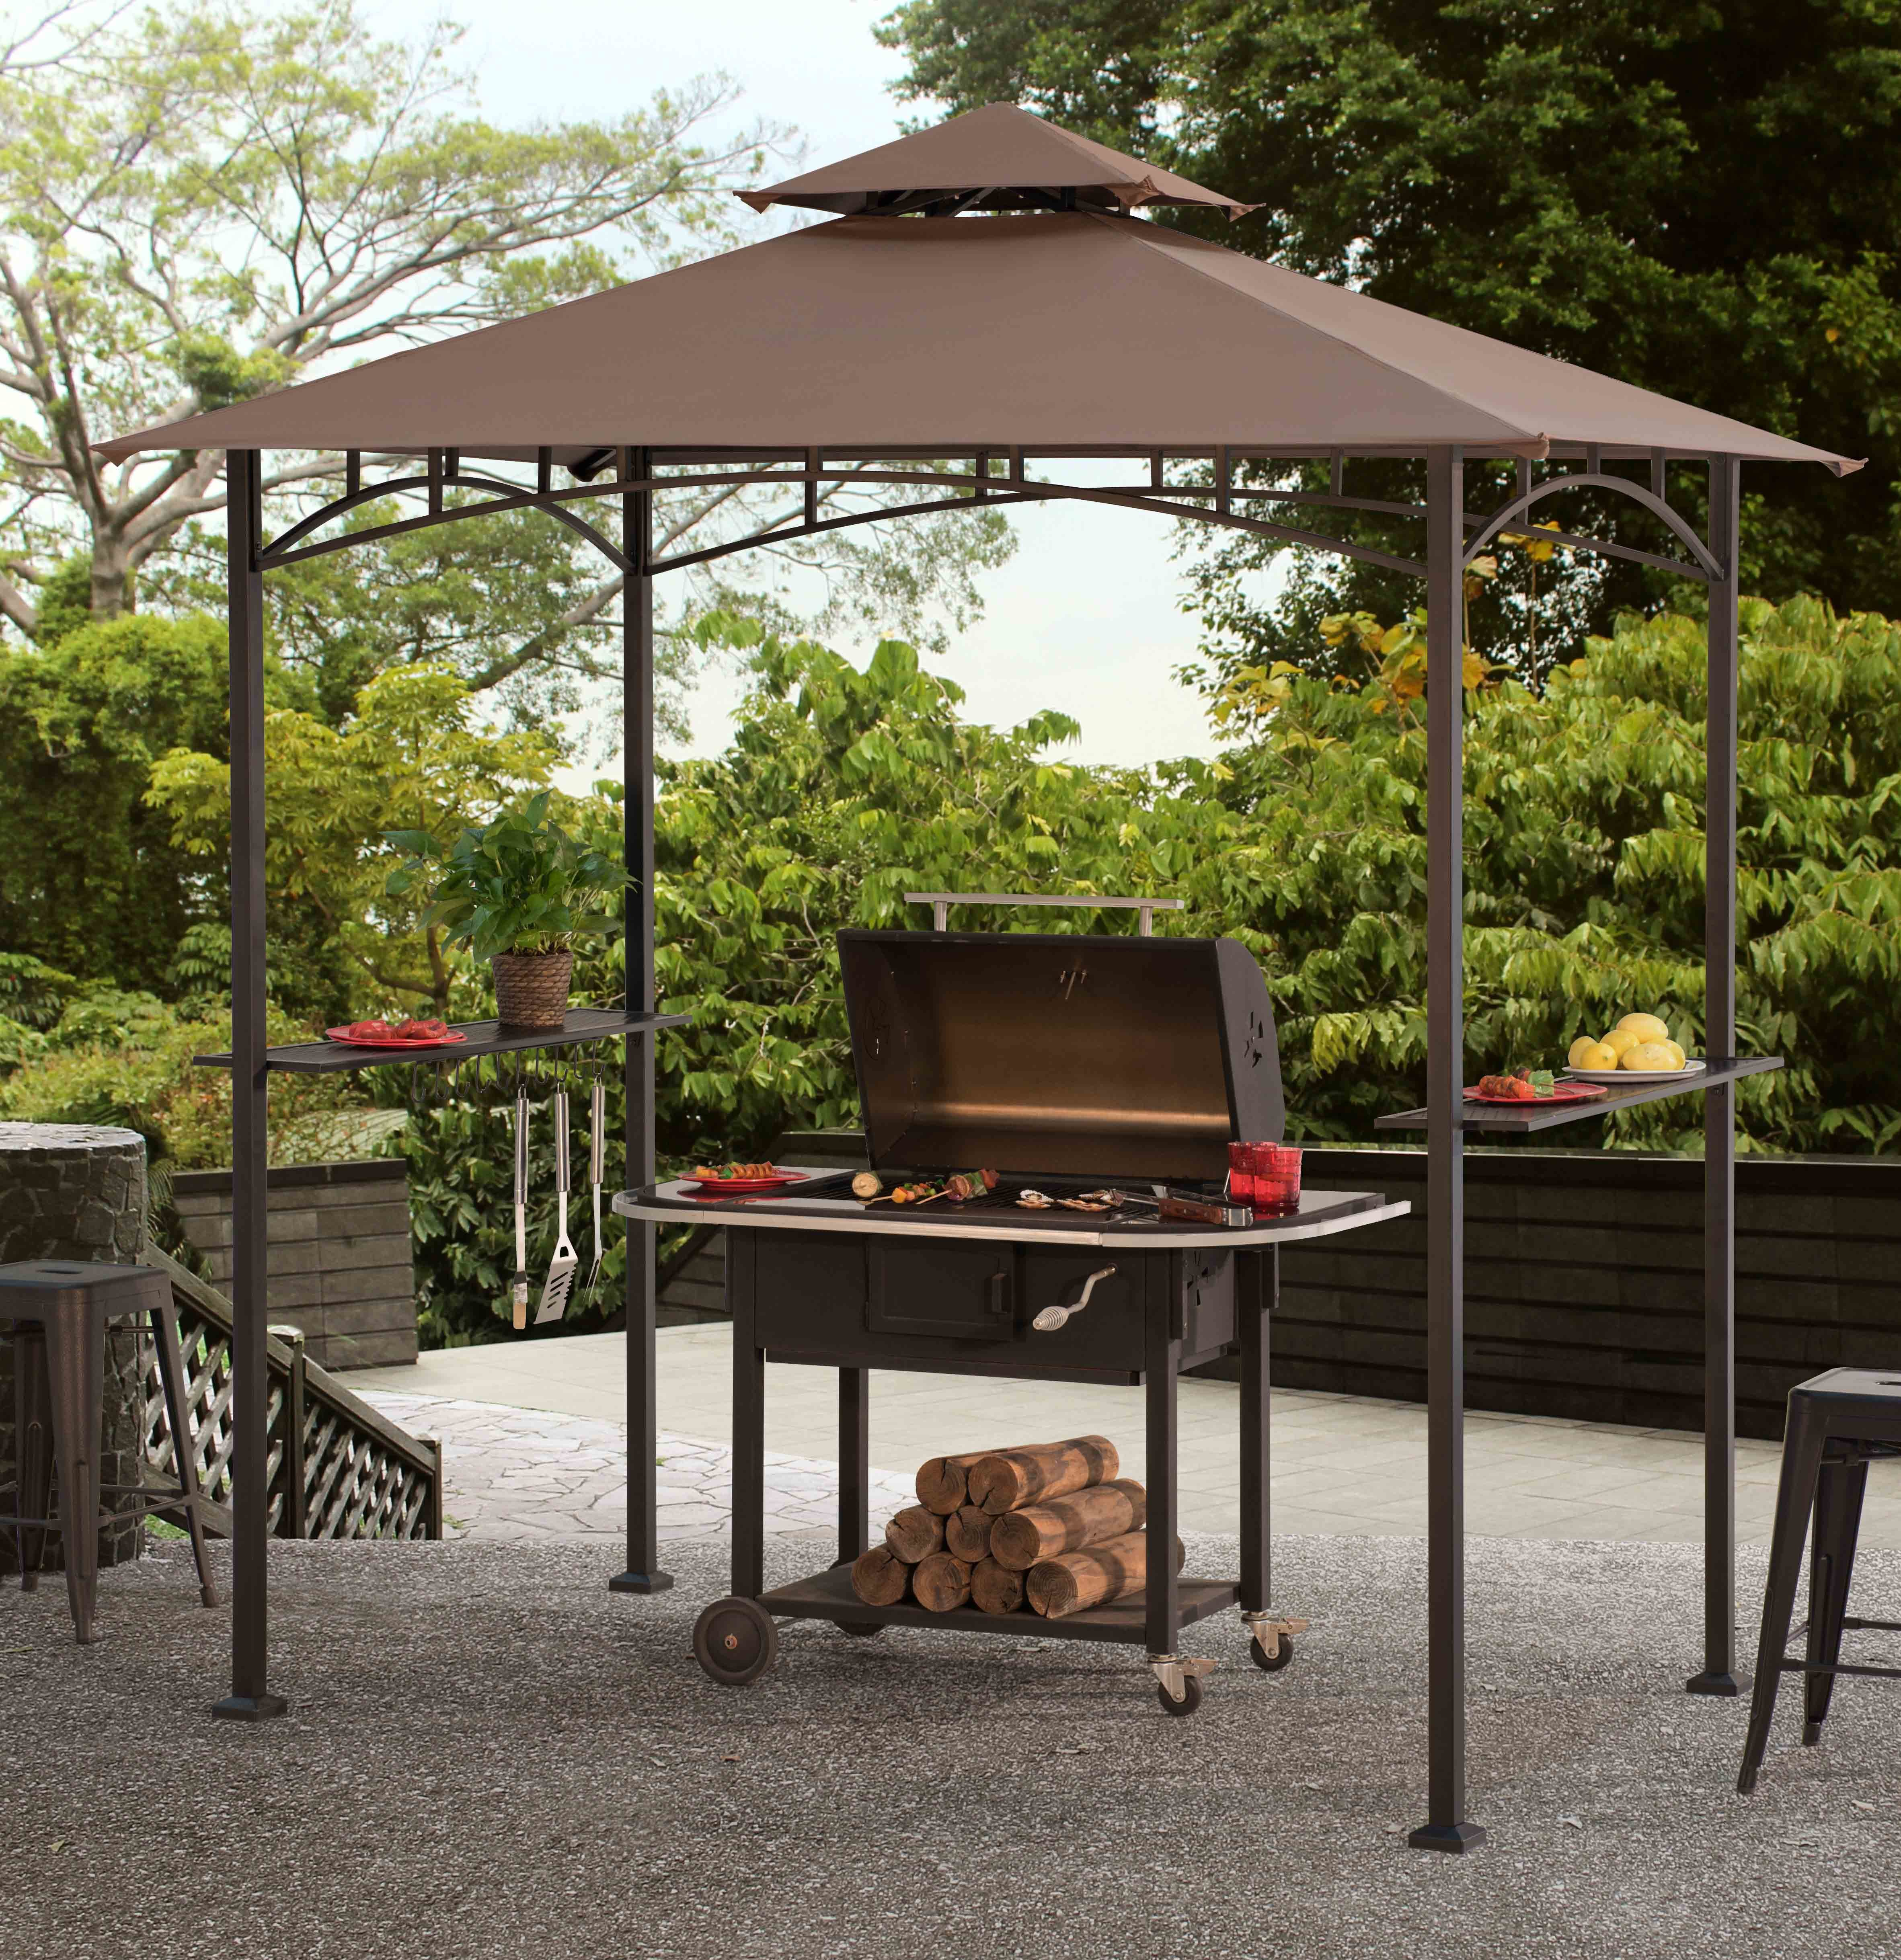 outdoor grill gazebo  21